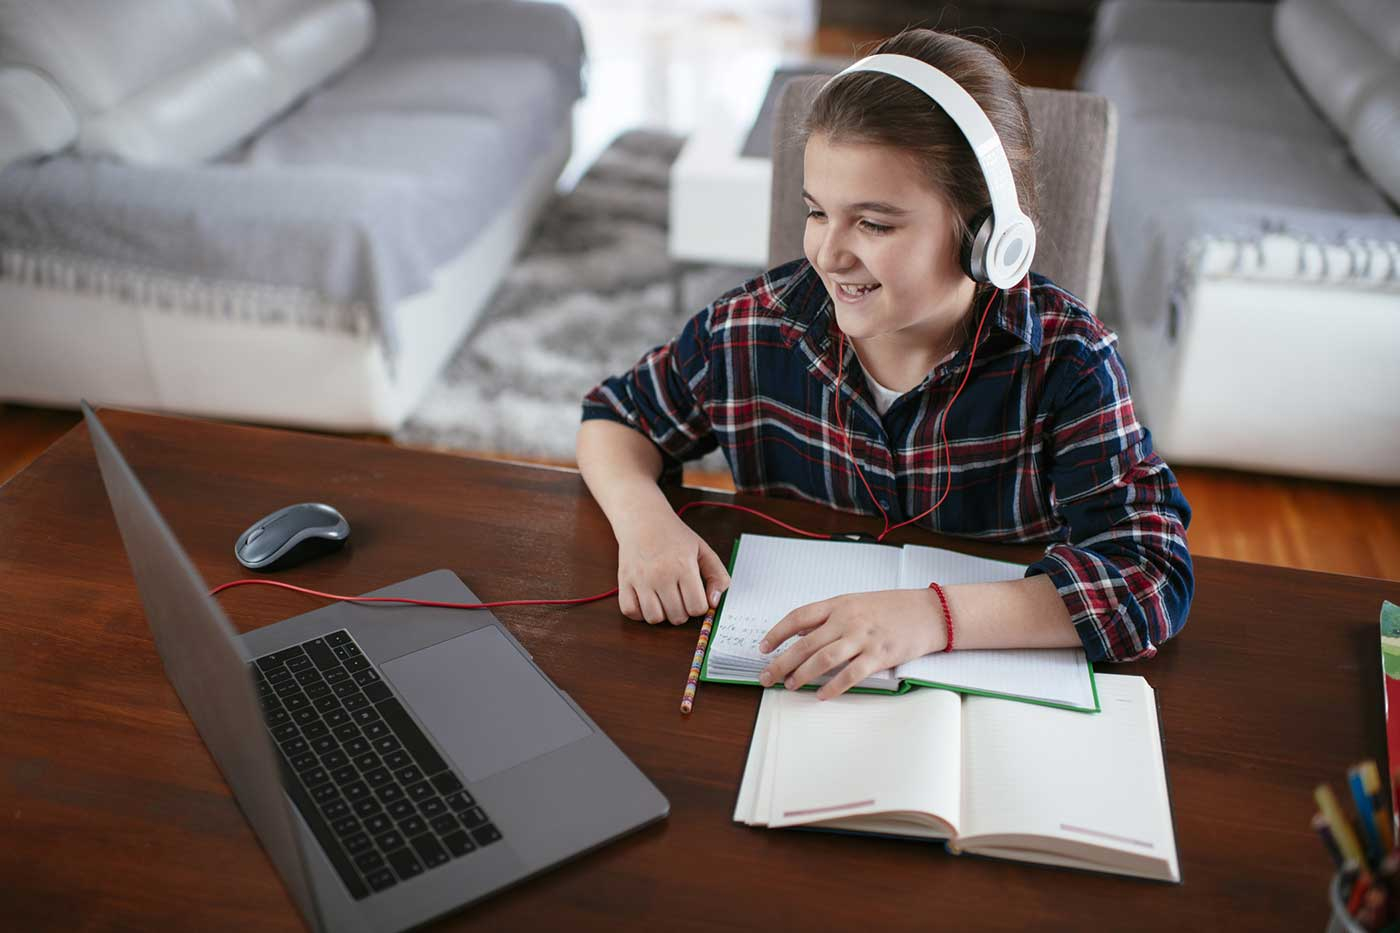 BrainStorm Tutoring Franklin Lakes NJ stock photo of student remote learning